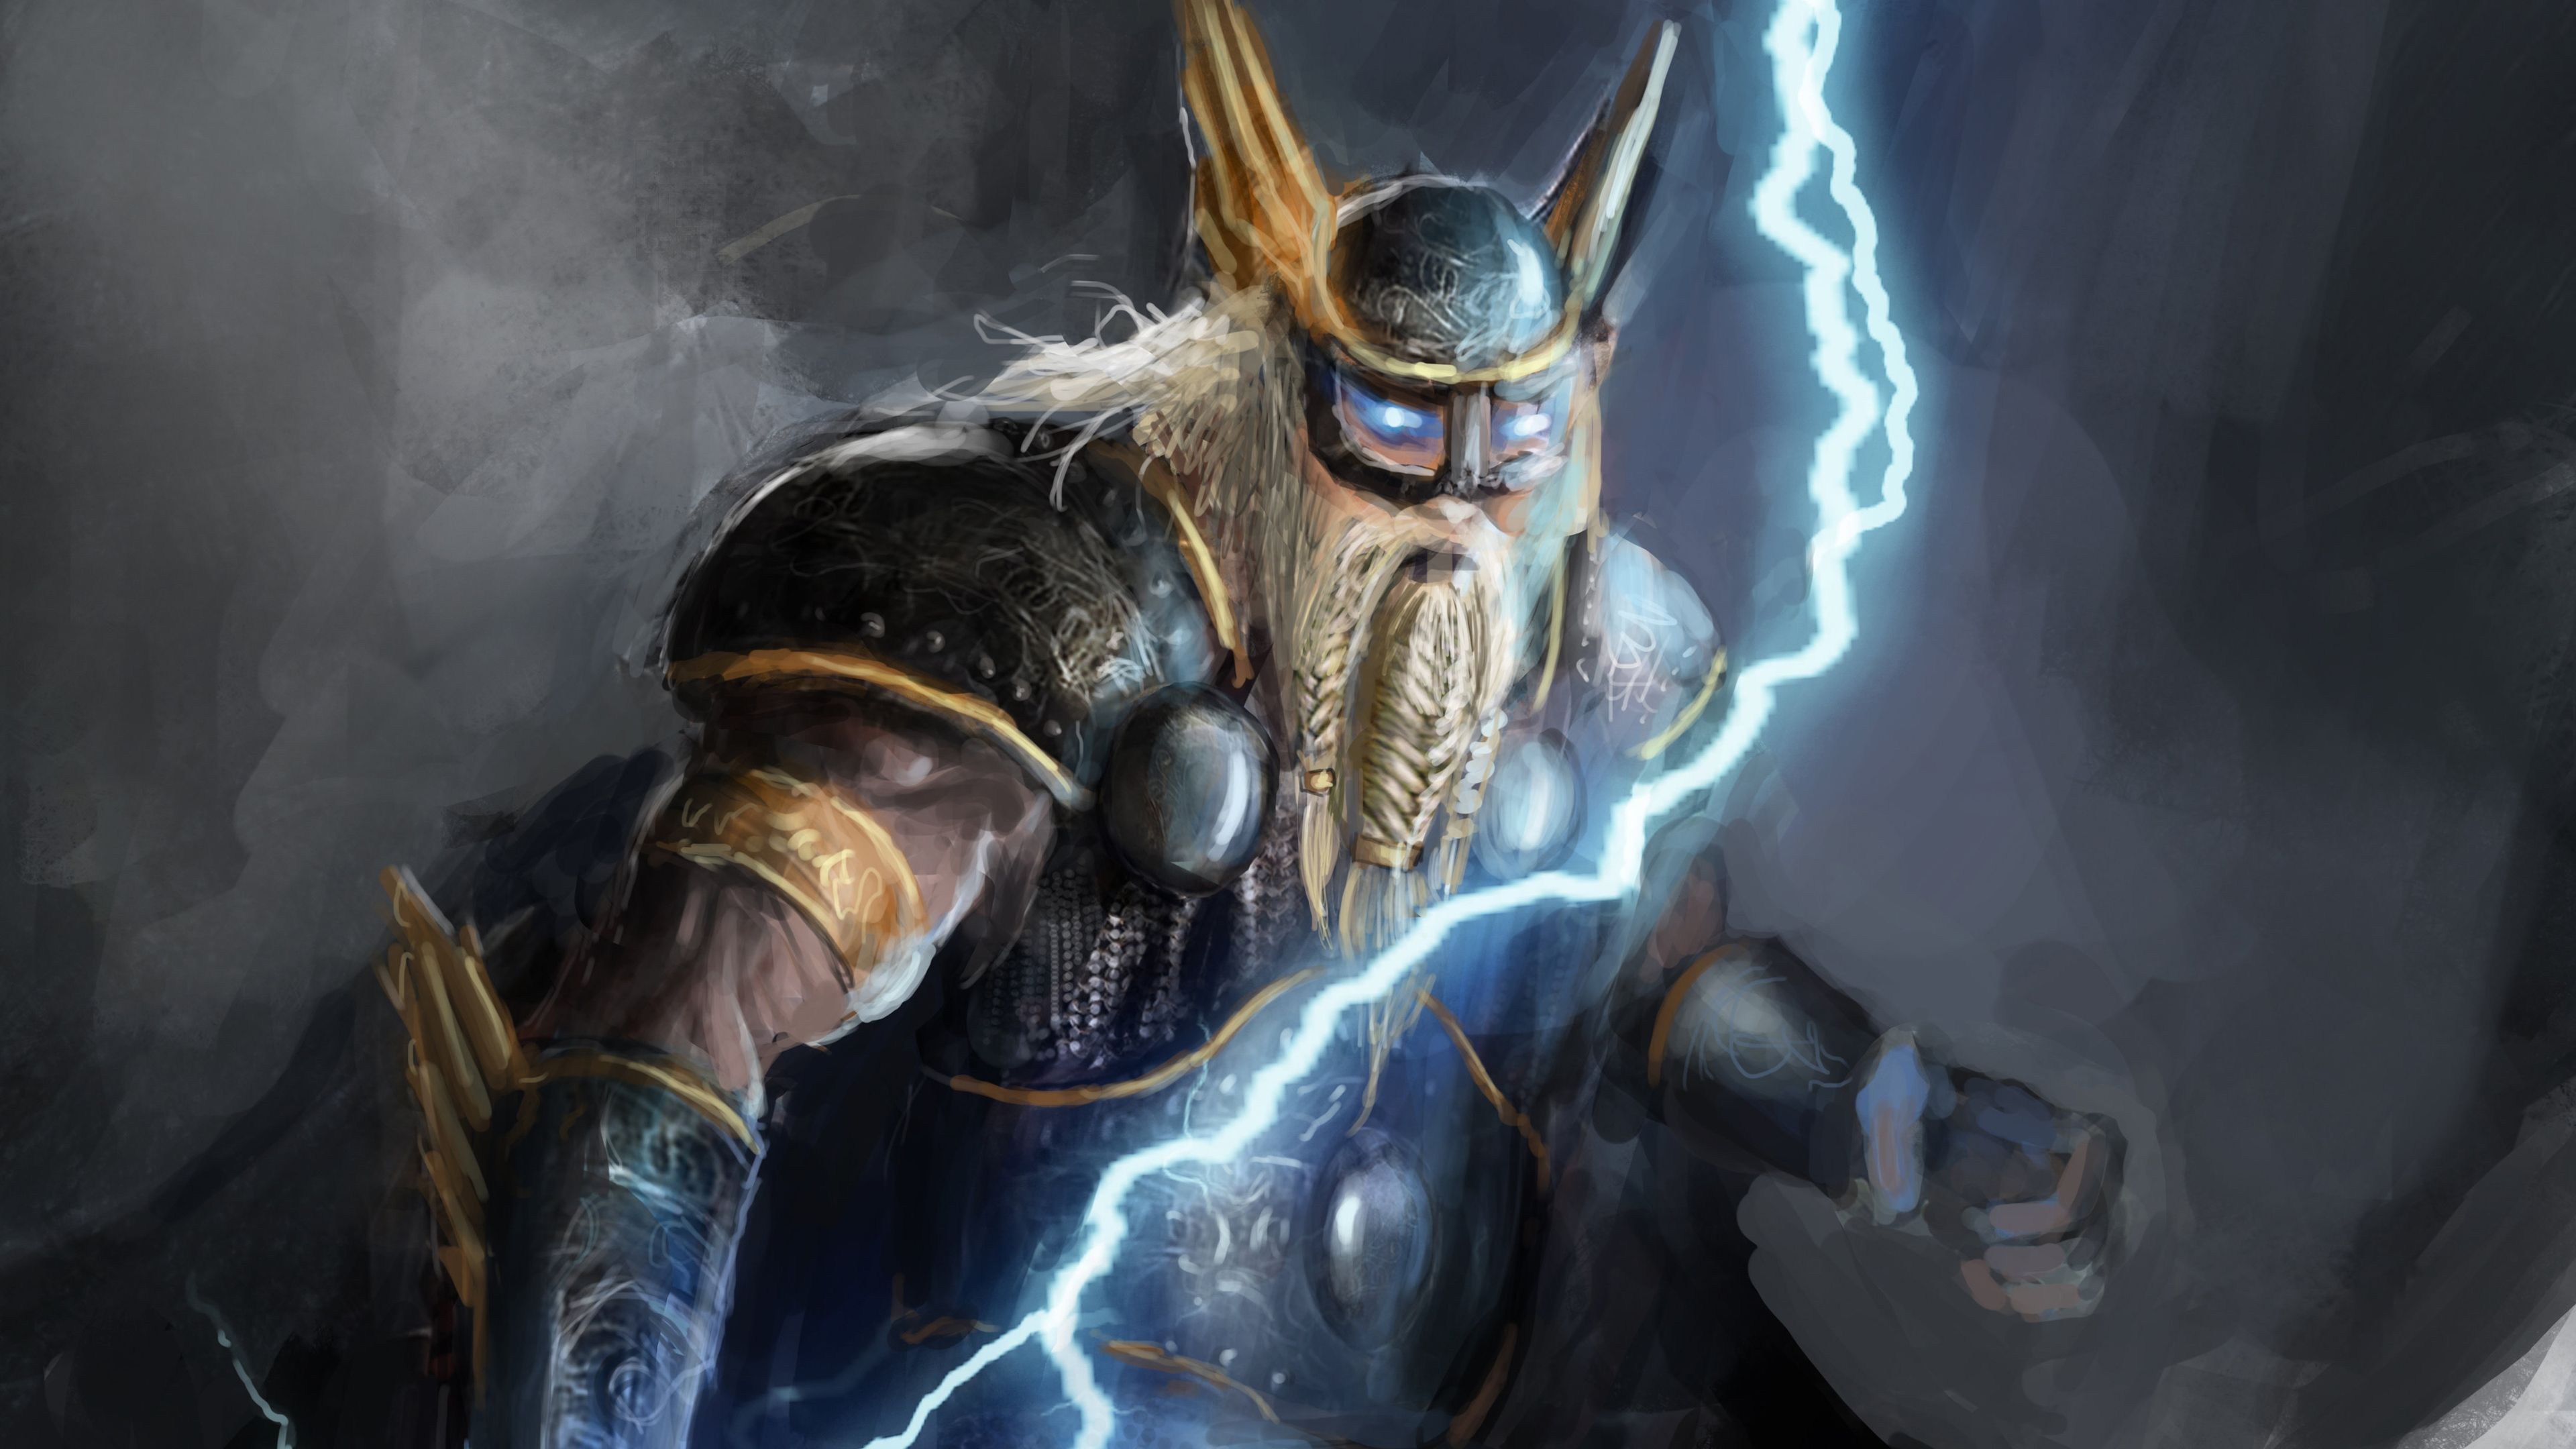 Norse God Of Lightning 4k Thor Wallpapers Superheroes Wallpapers Hd Wallpapers Digital Art Wallpapers Artwork Wallpapers Artist Norse Thor Thor Wallpaper